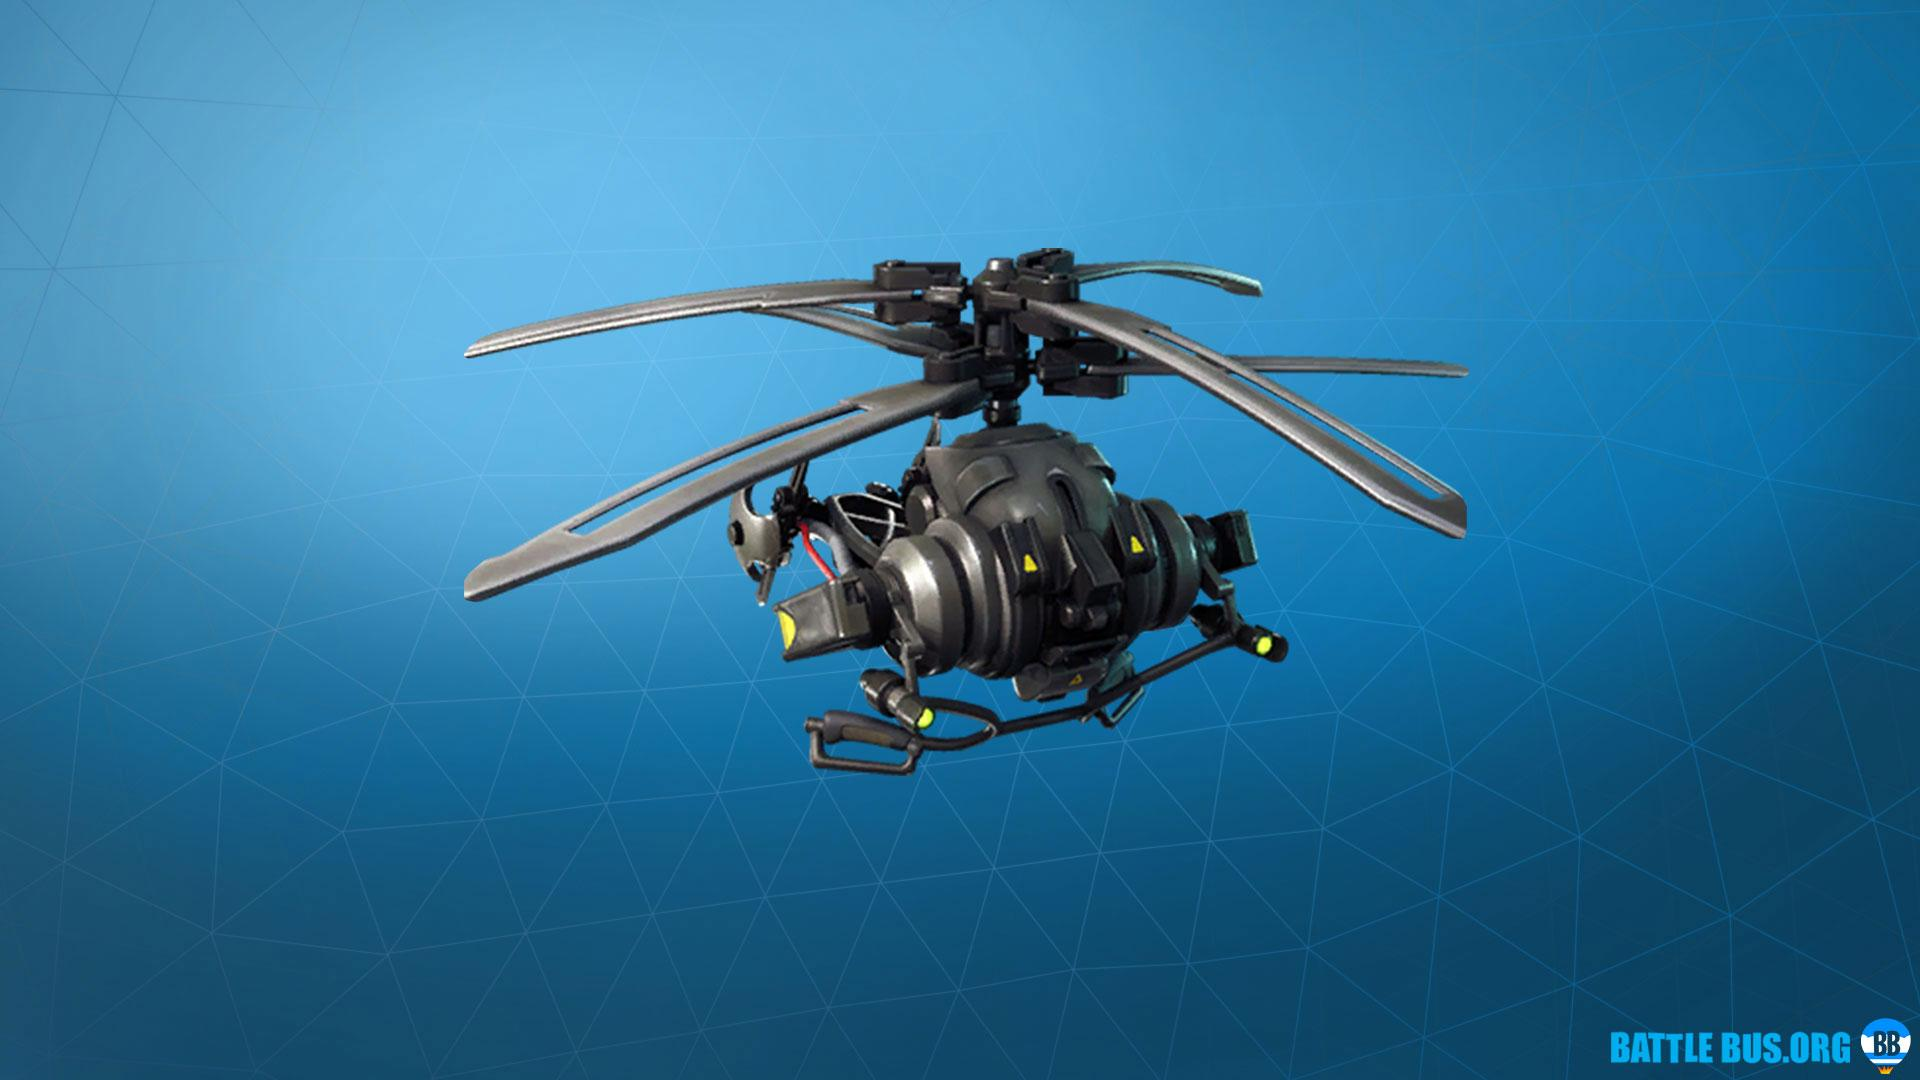 Coaxial Copter glider - Tech Ops Set: fortnite skins, info, HD images